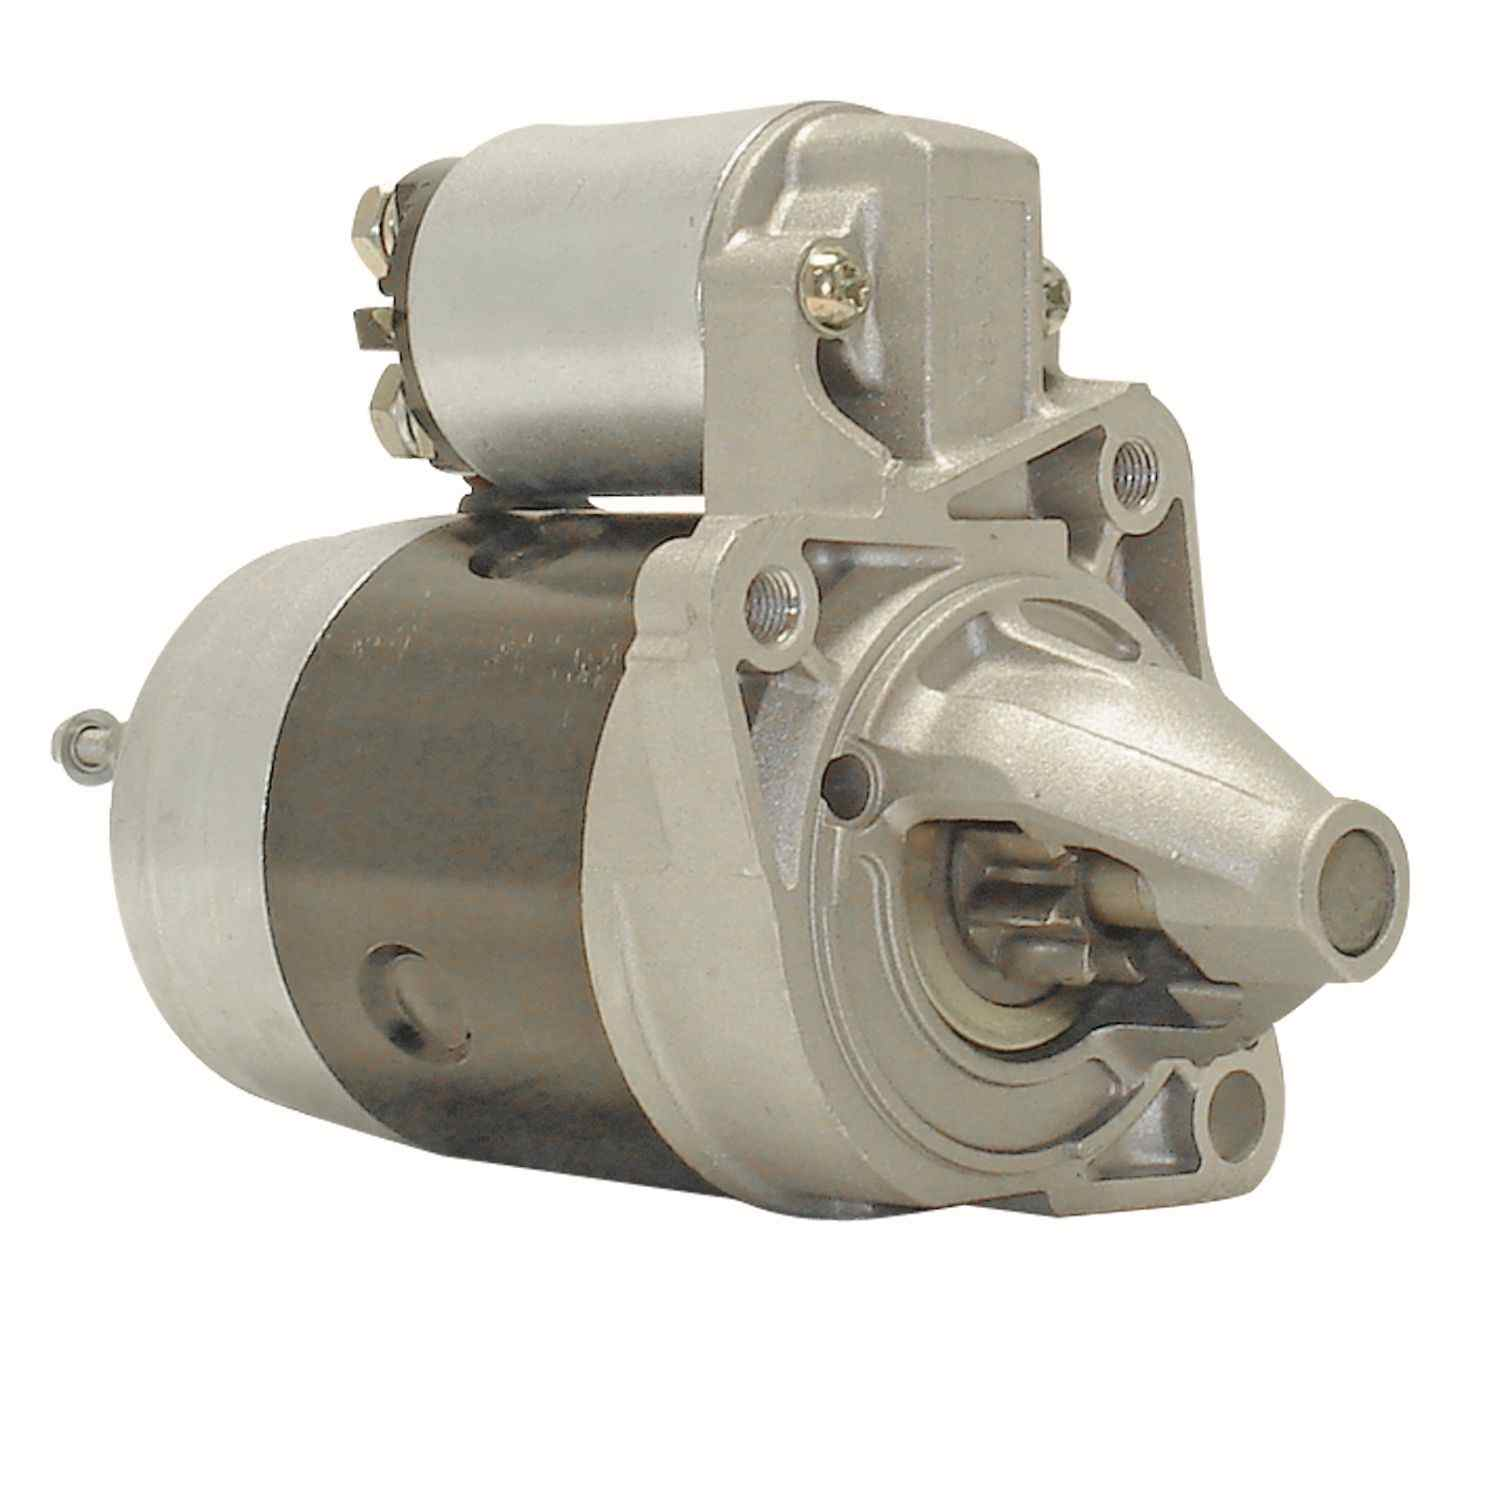 ACDELCO GOLD/PROFESSIONAL - Reman Starter Motor - DCC 336-1146